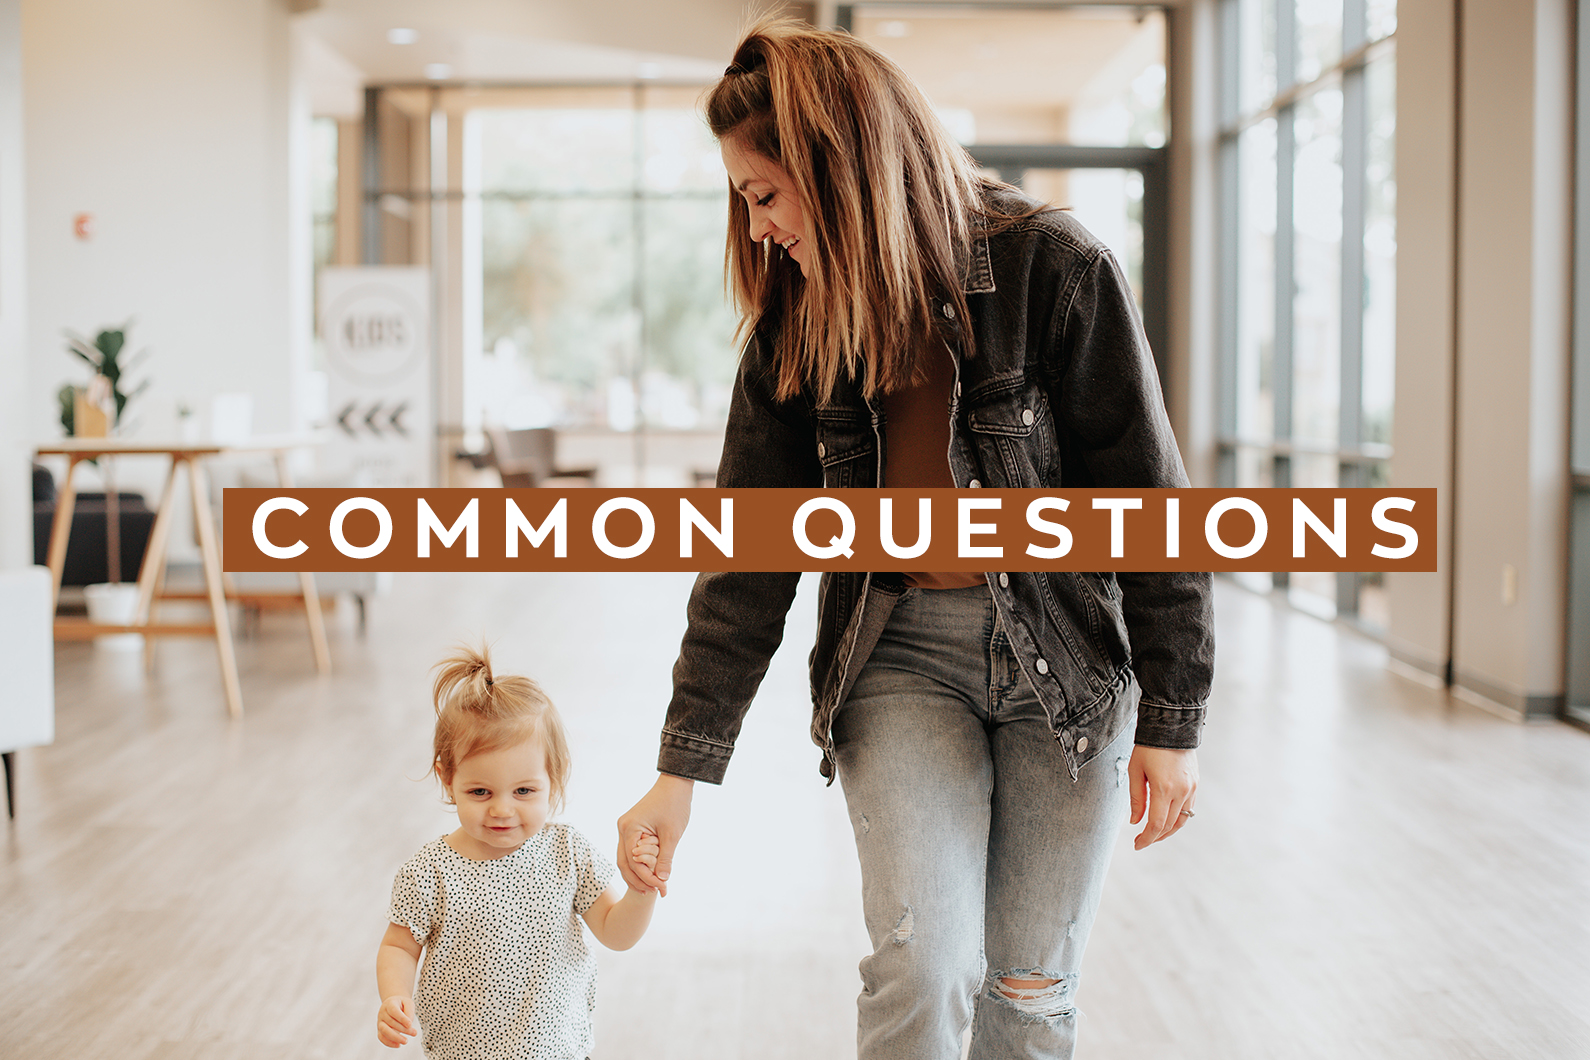 Do you have any quesions? Click here to have some common questions answered.